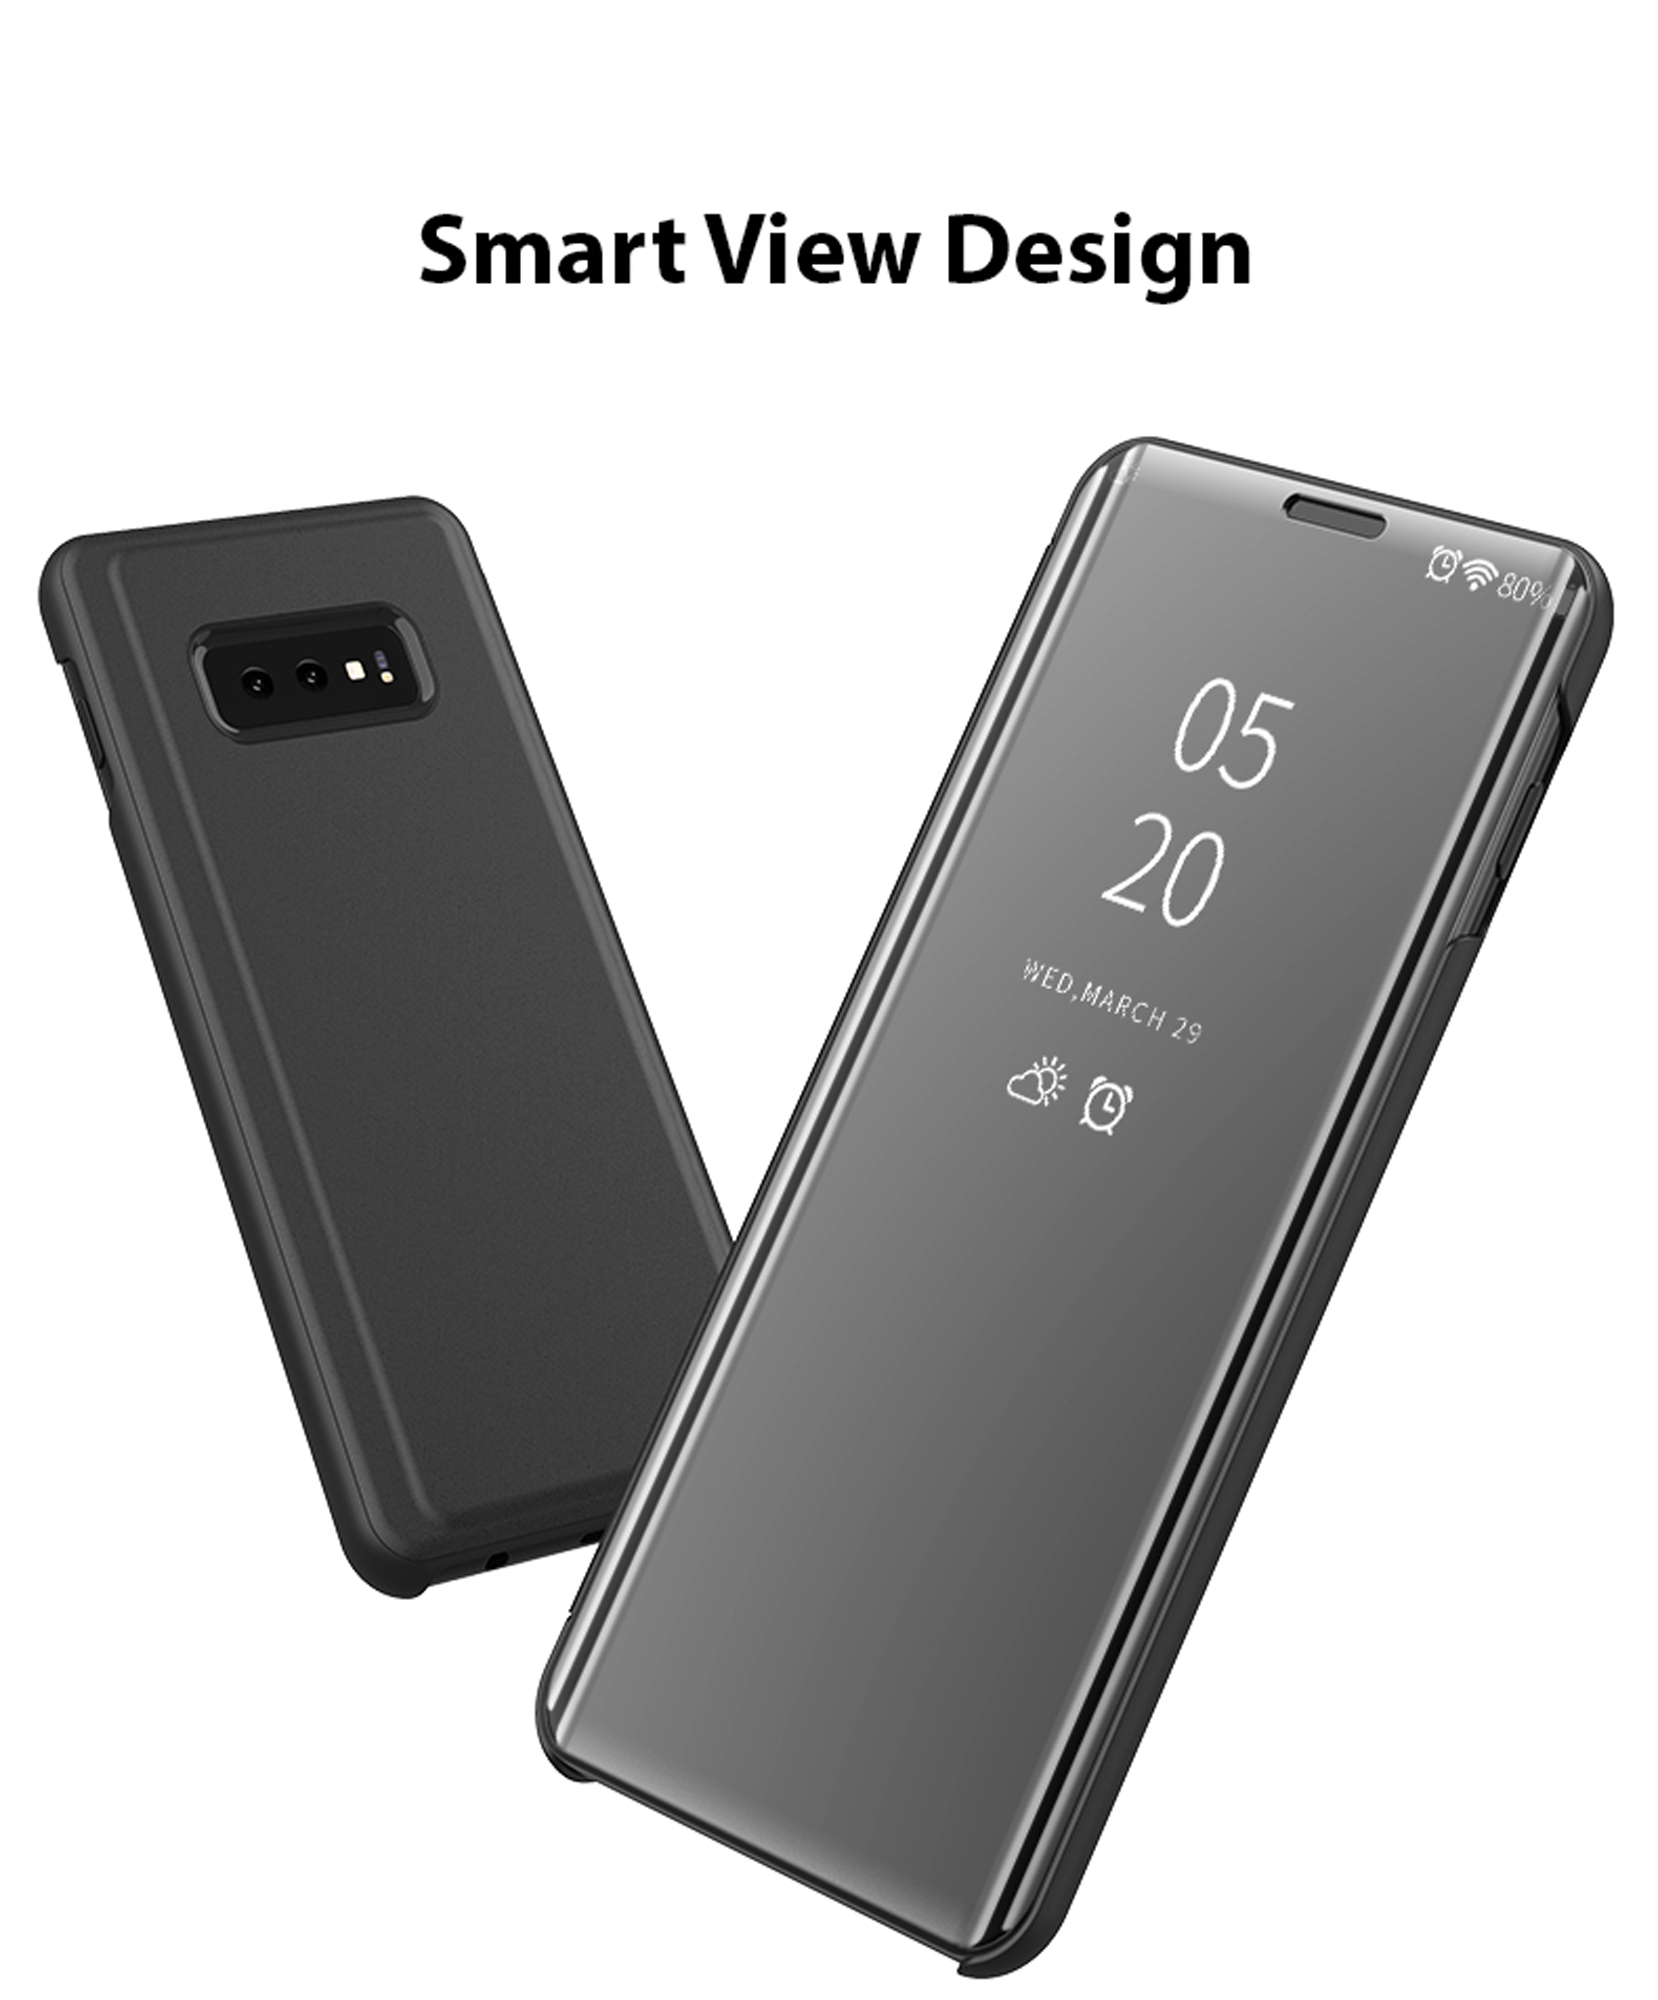 New-Samsung-Galaxy-S9-S10-Plus-Smart-View-Mirror-Leather-Flip-Stand-Case-Cover thumbnail 14